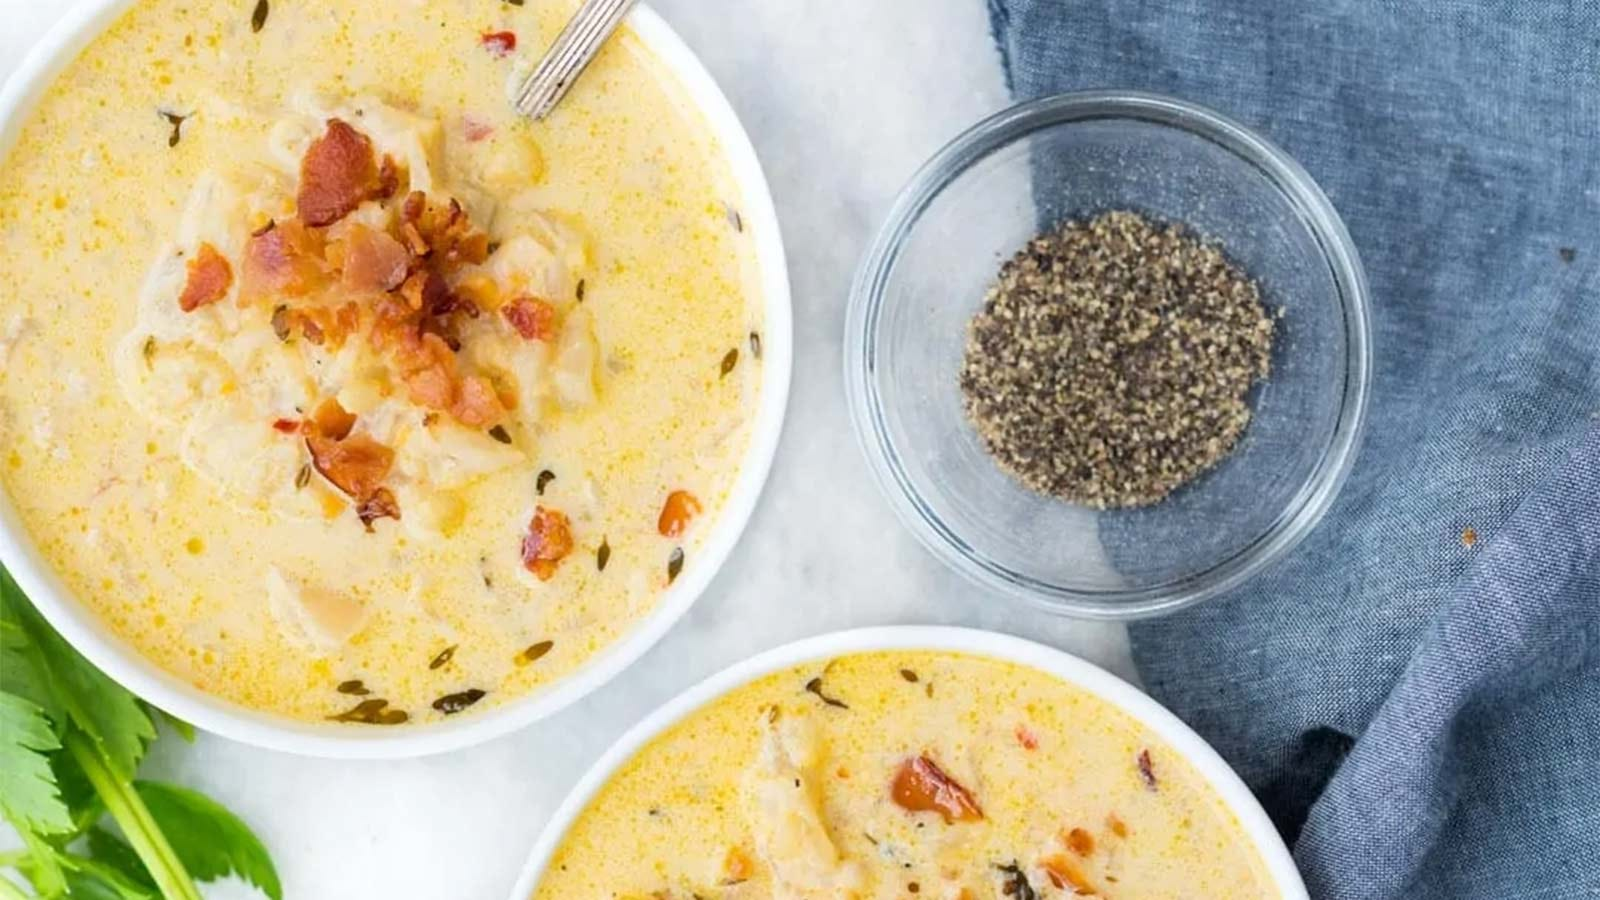 Cauliflower Cheddar Soup made in an Instant Pot.